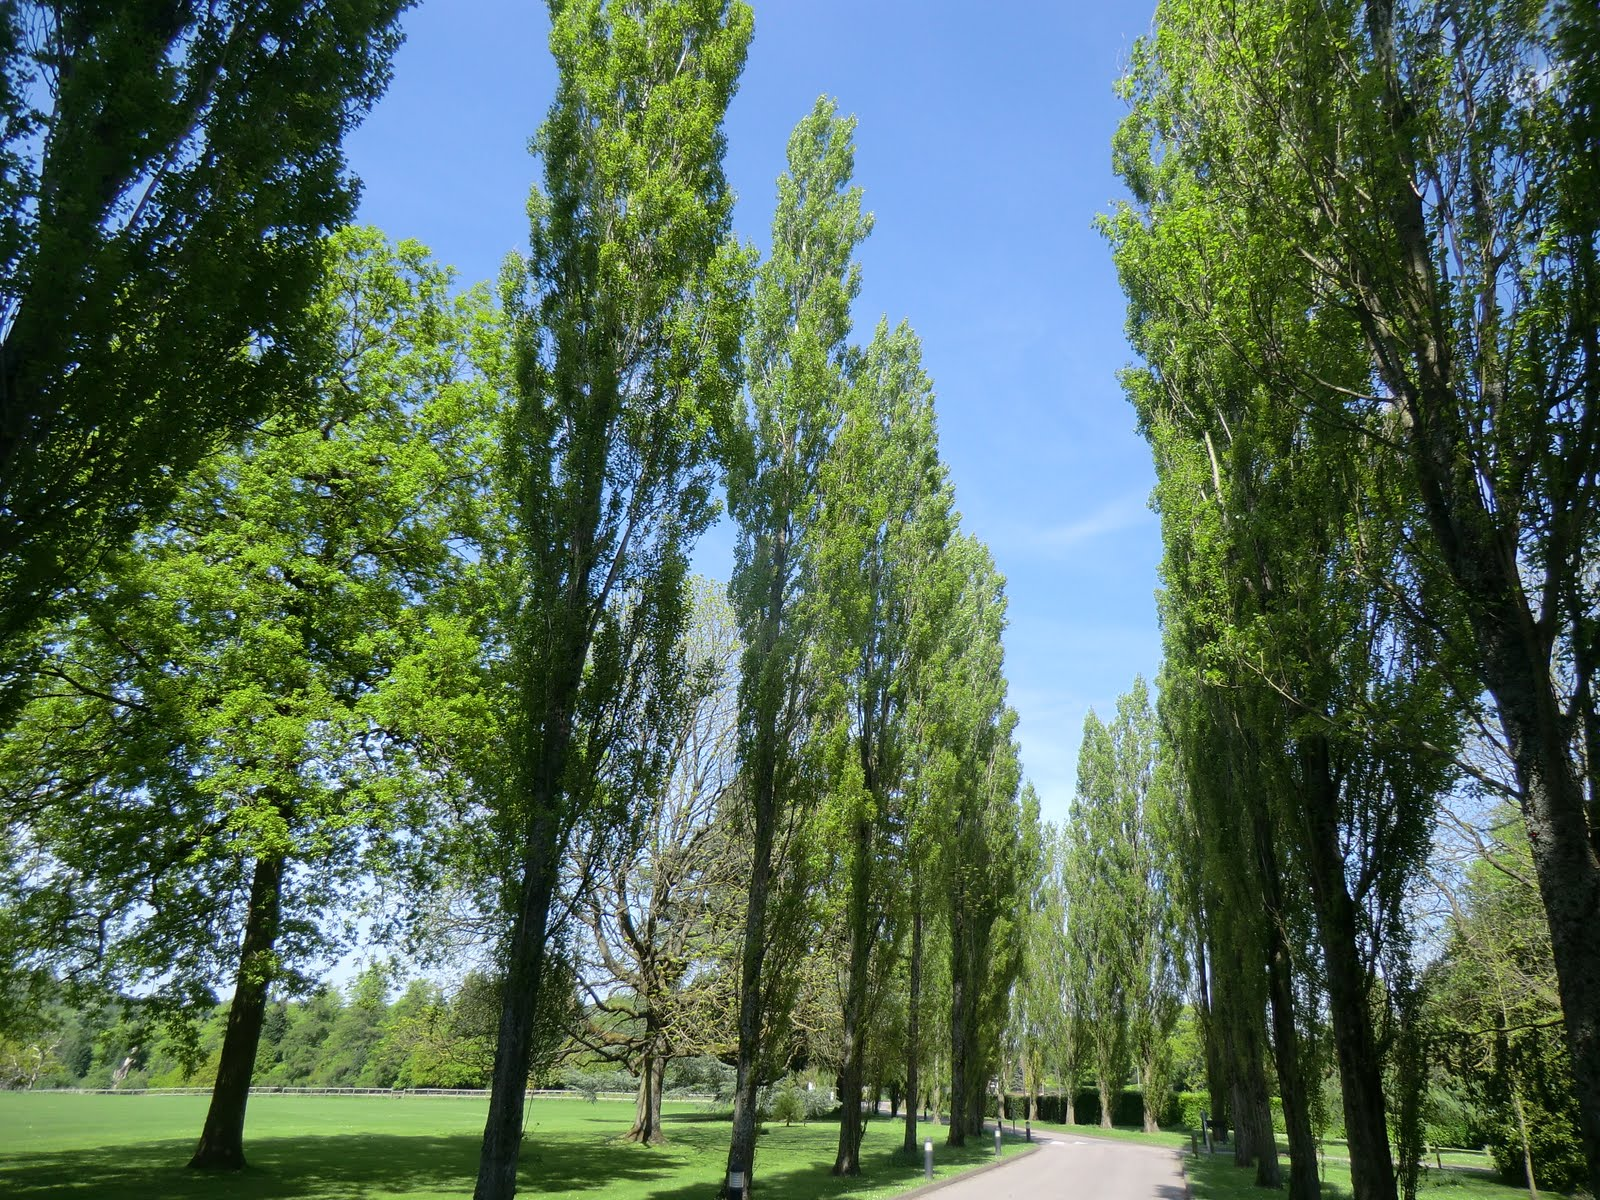 CIMG6810 Avenue of poplars, Gatton Park